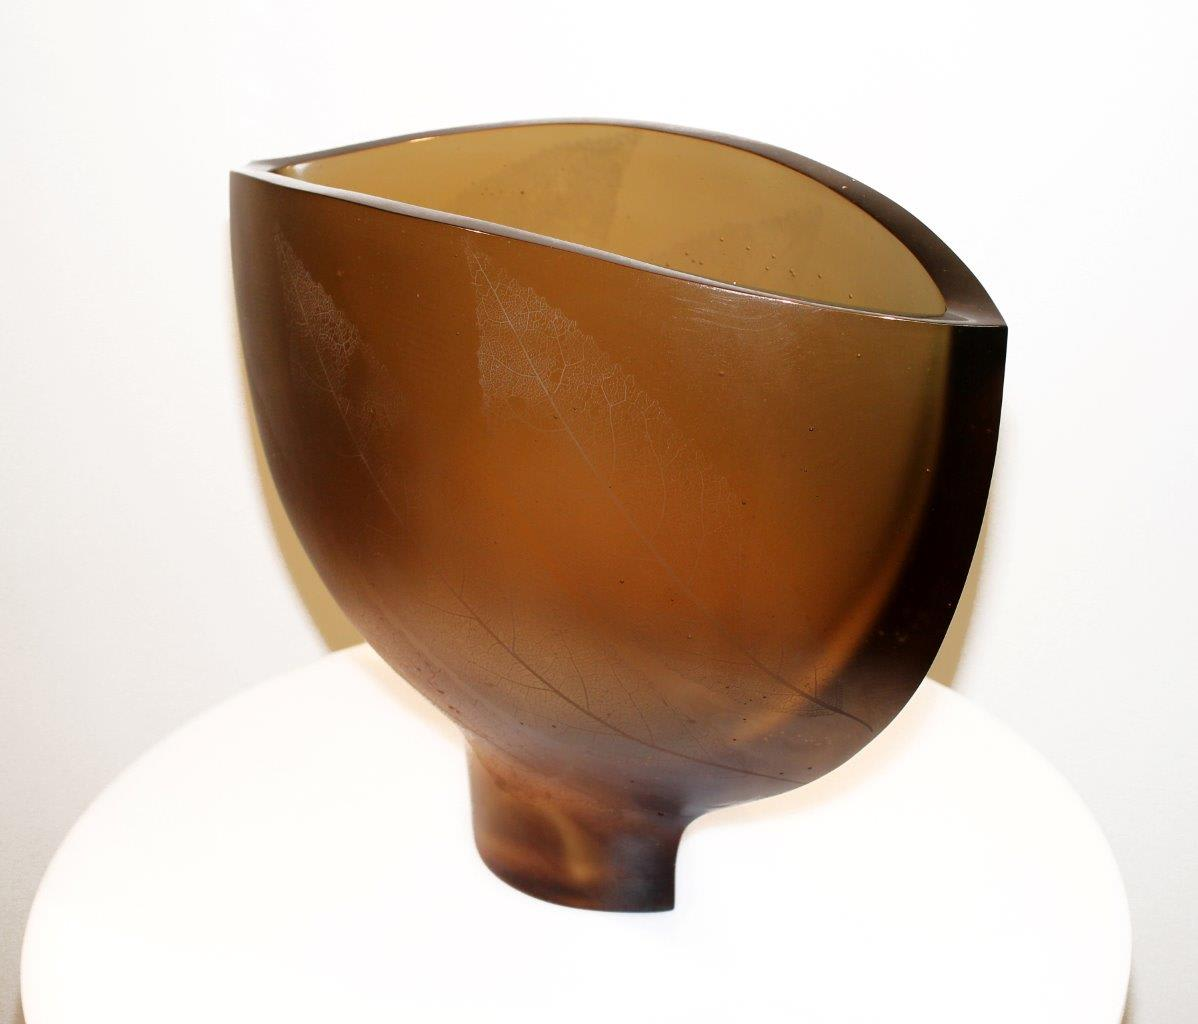 Ann Robinson Landscape Bowl, 2009/2012 Cast glass 15.4 x 19.4 x 8.9 in 39.1 x 49.2 x 22.5 cm